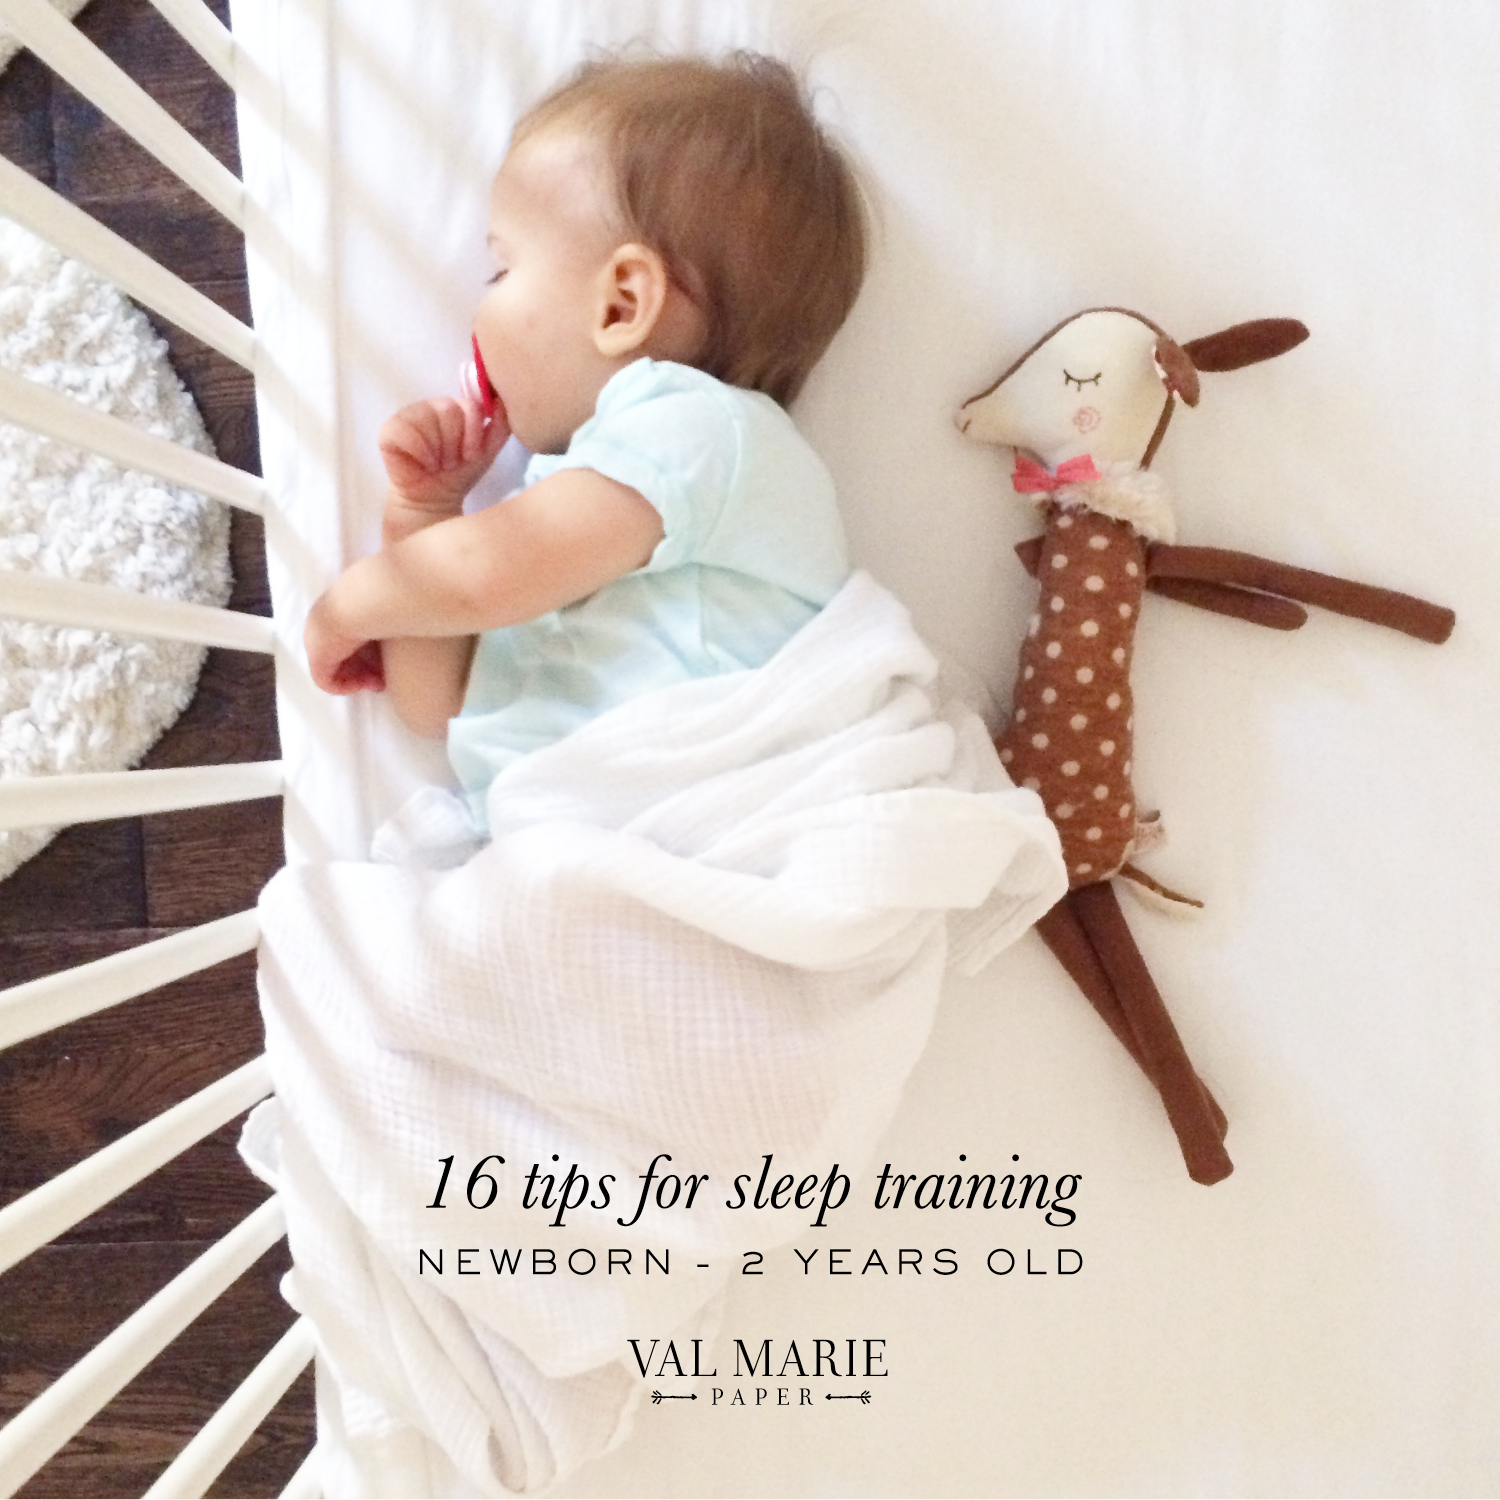 Newborn Sleep Sleep Training Newborn 2 Years Val Marie Paper